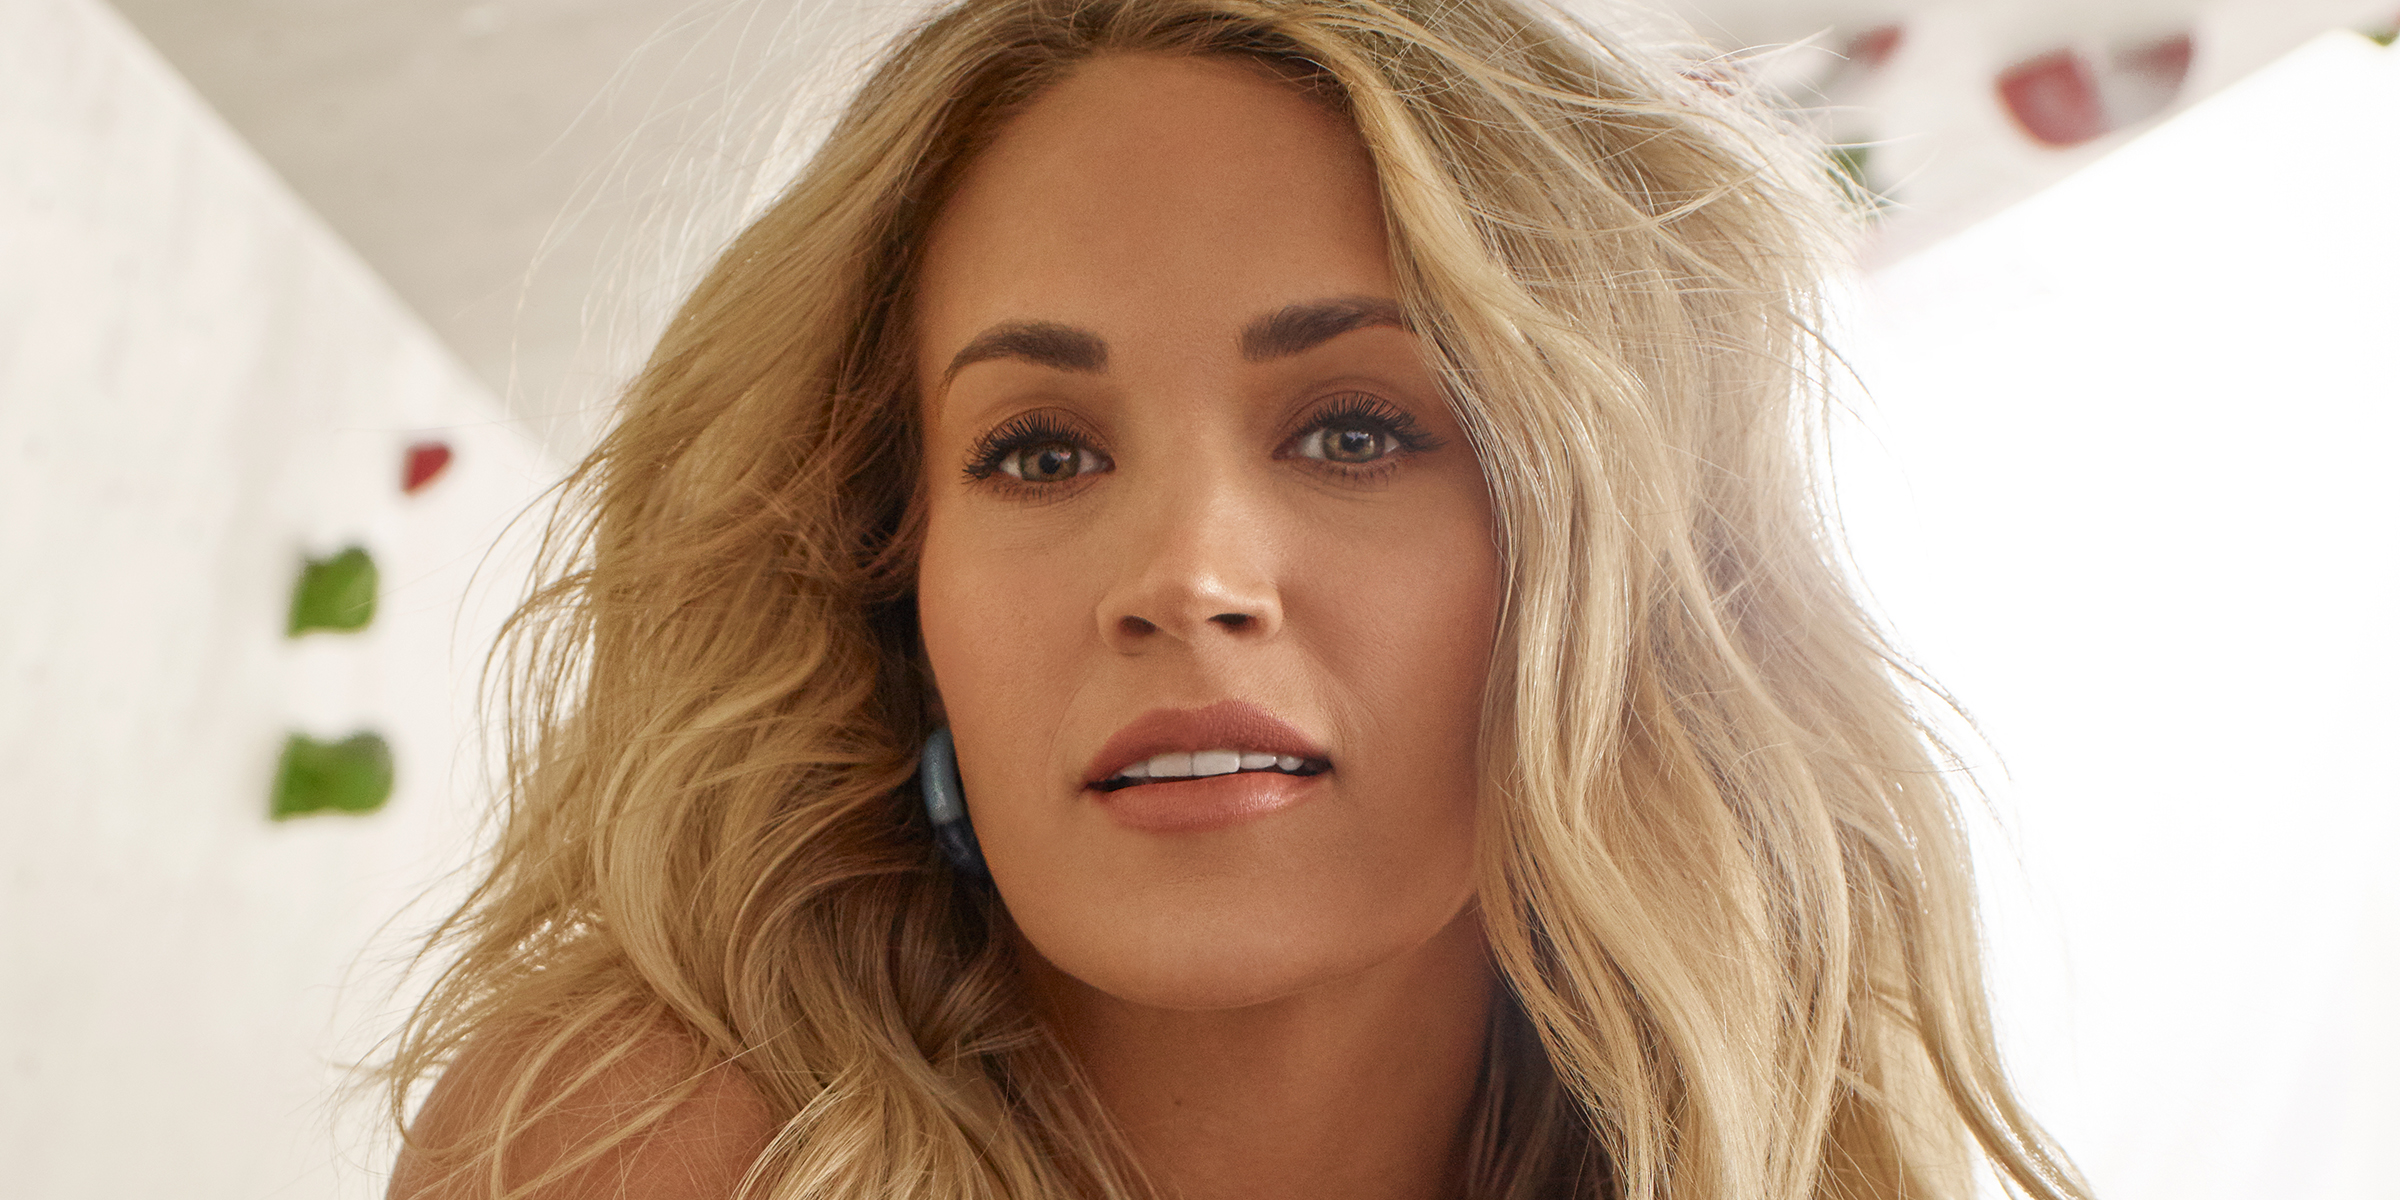 Carrie Underwood Opens Up About Miscarriages Healing And Self Care